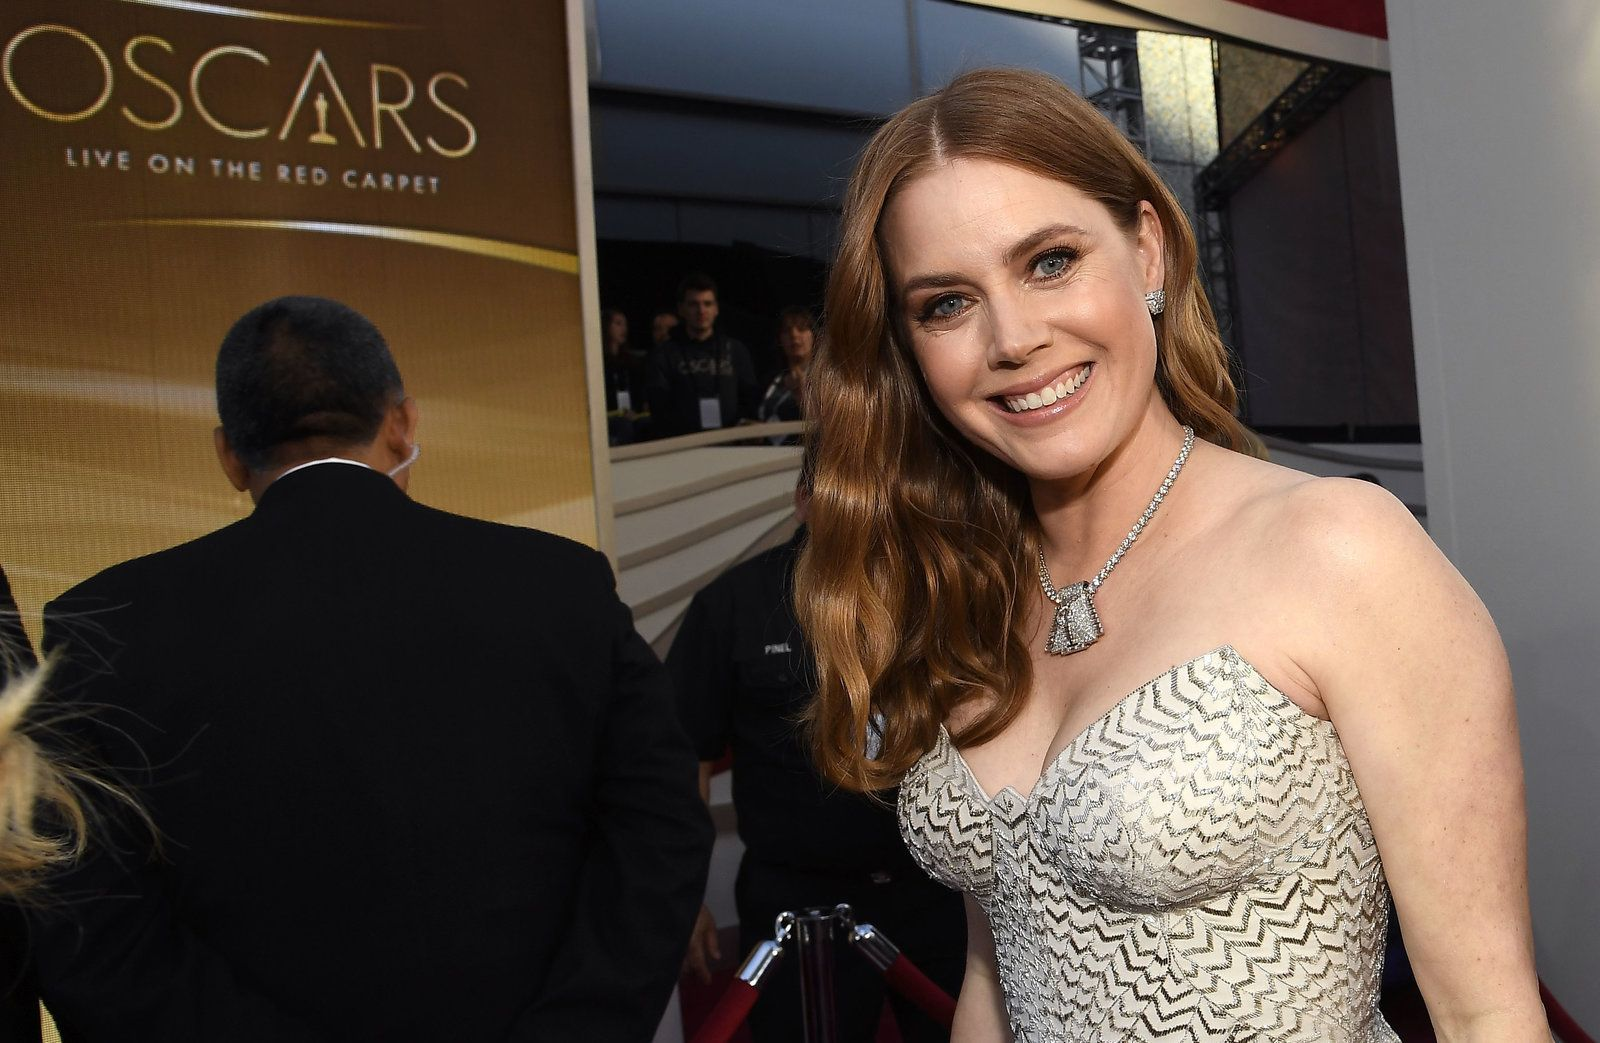 Oscars 2019 The Red Carpet In 2020 Actress Amy Adams Amy Adams